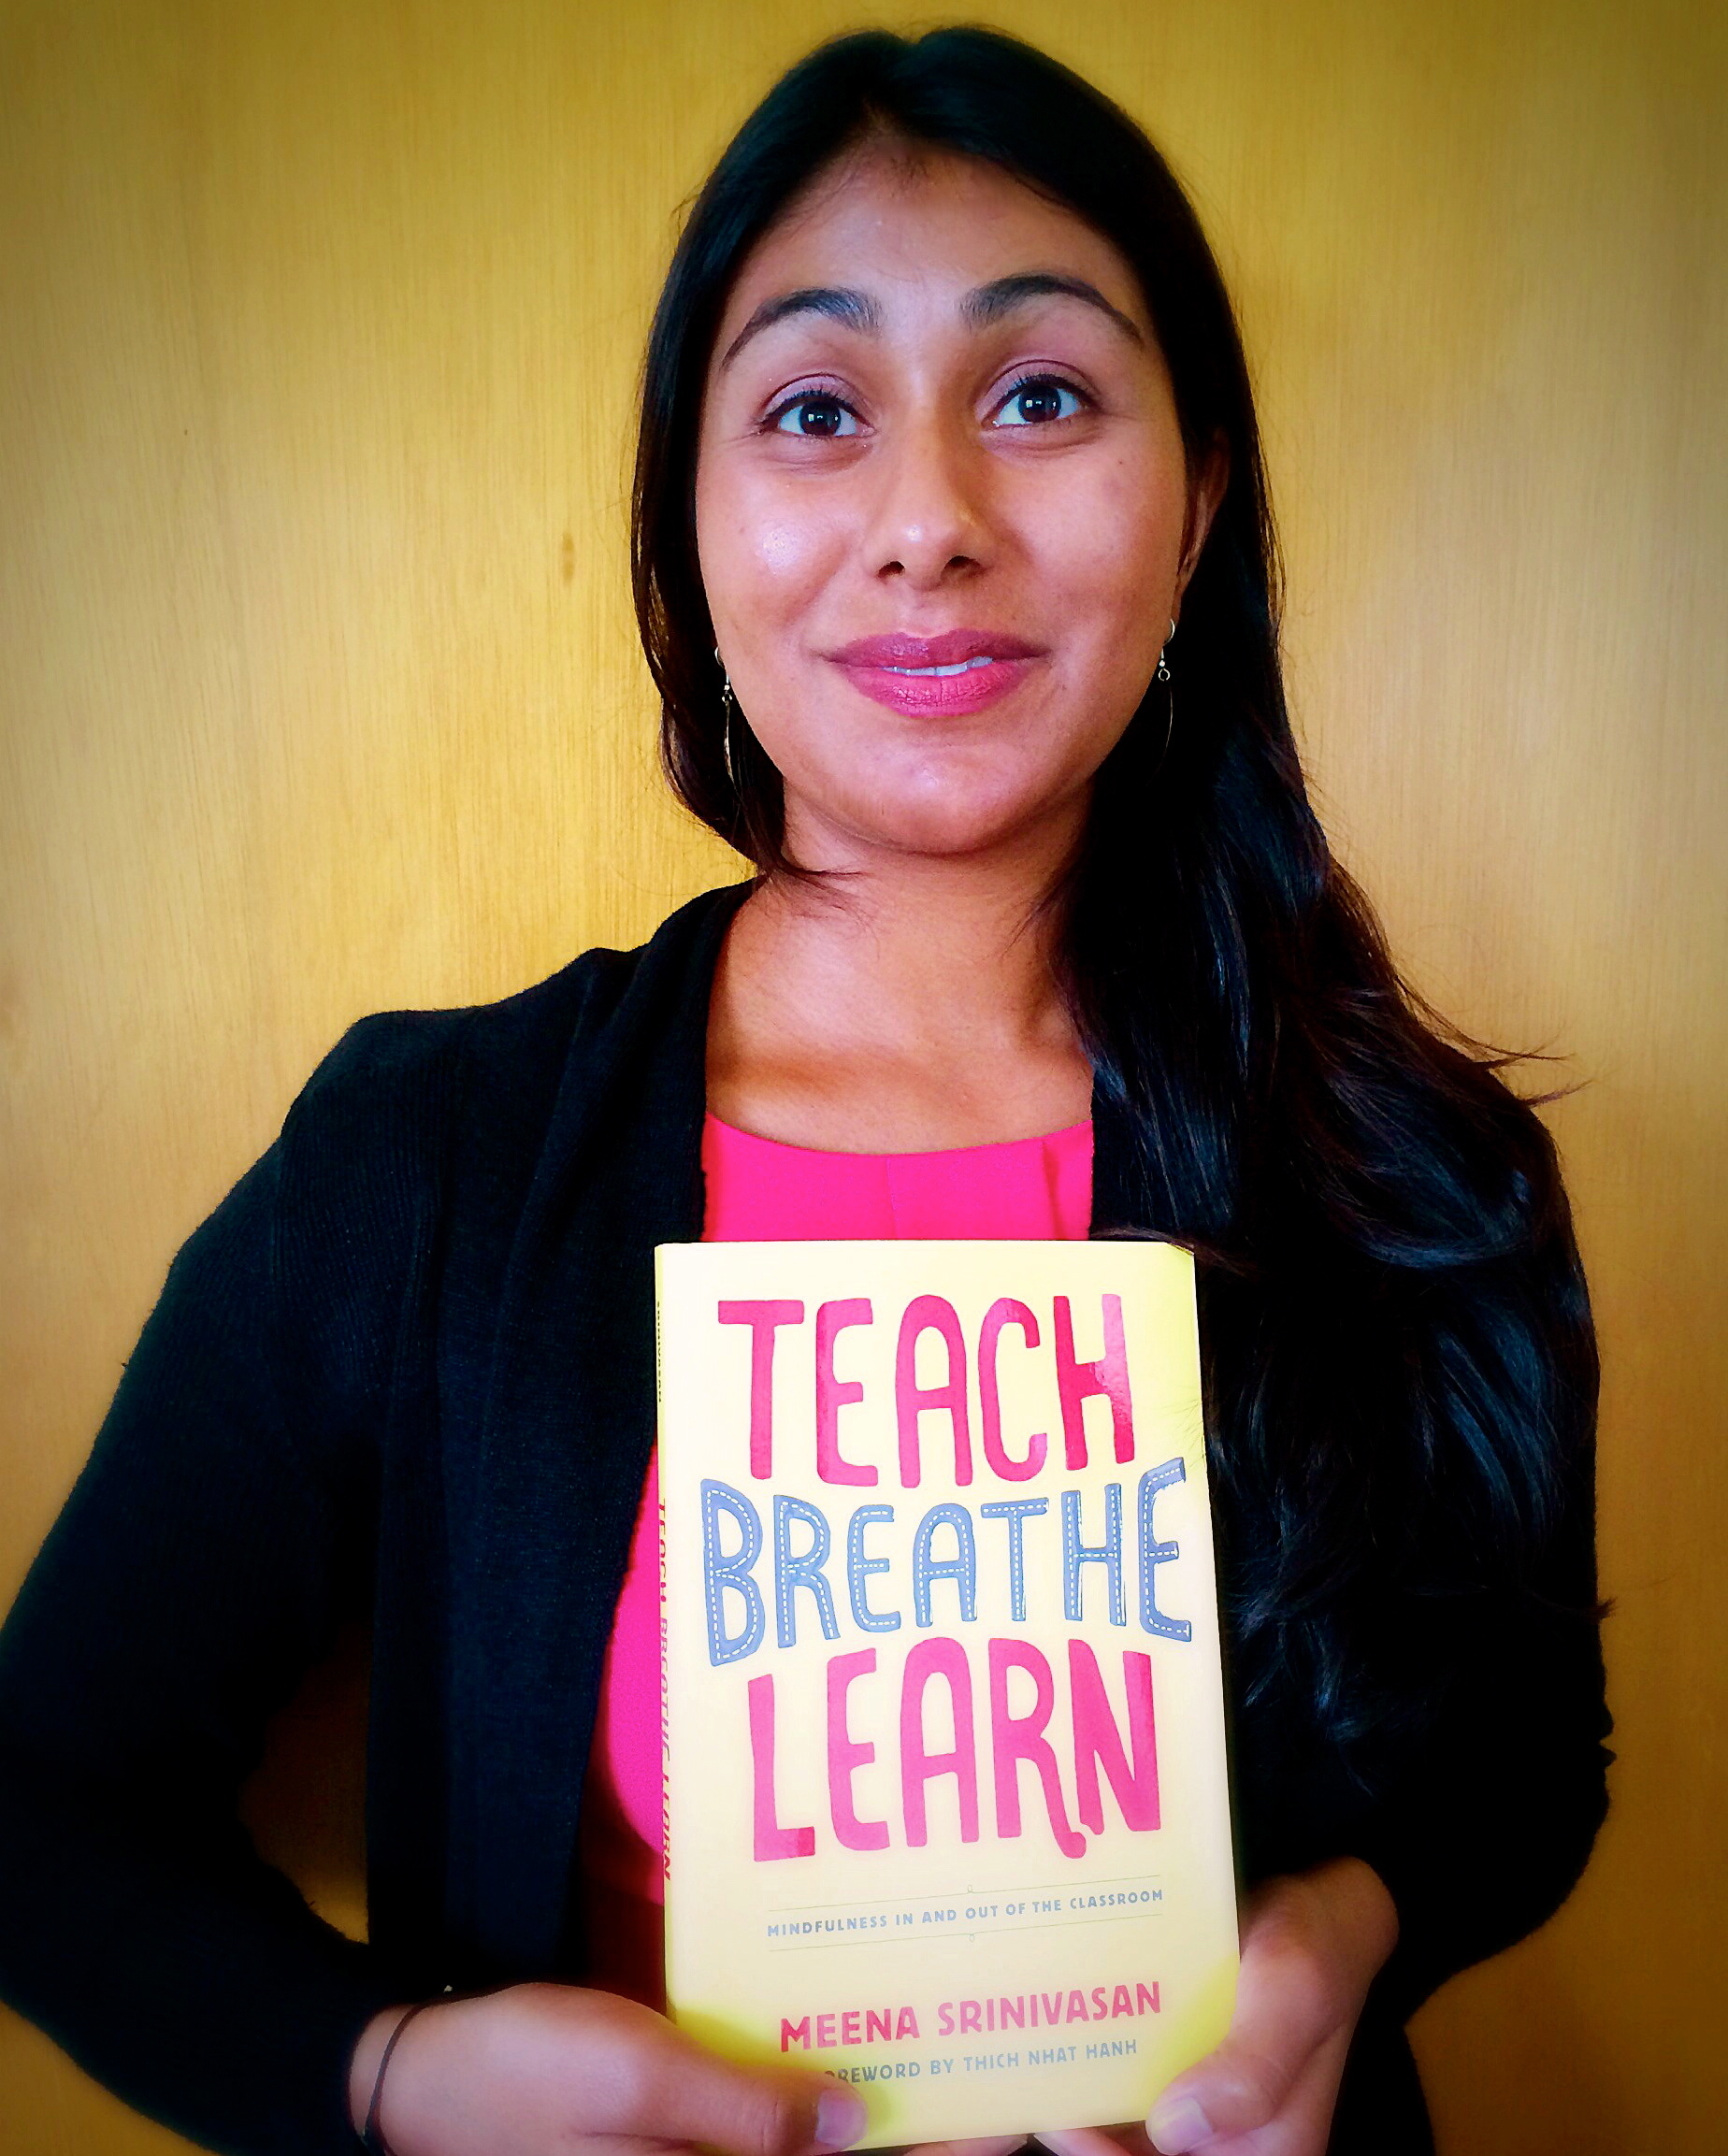 "- In Teach, Breathe, Learn, Meena Srinivasan highlights how mindfulness can be an effective tool in the classroom. What makes this book truly unique is her perspective as a classroom teacher, wrestling daily with the conditions about which she writes.Teach, Breathe, Learn is designed for educators at all levels, parents interested in sharing mindfulness with their children, and anyone curious about how to cultivate their own mindfulness practice and eventually teach mindfulness to others.Teach, Breathe, Learn provides accessible, practical application of mindfulness to overcome challenges faced during the school day.Testimonials from students and colleagues are woven throughout the book.Part 1 helps develop compassion and shift from ""reacting"" to ""responding"" to demands.Part 2 offers techniques for cultivating loving-kindness, gratitude and seeing others as oneself.The last section of the book introduces a curriculum anyone can use to teach mindfulness, replete with lesson plans, handouts, and homework assignments."